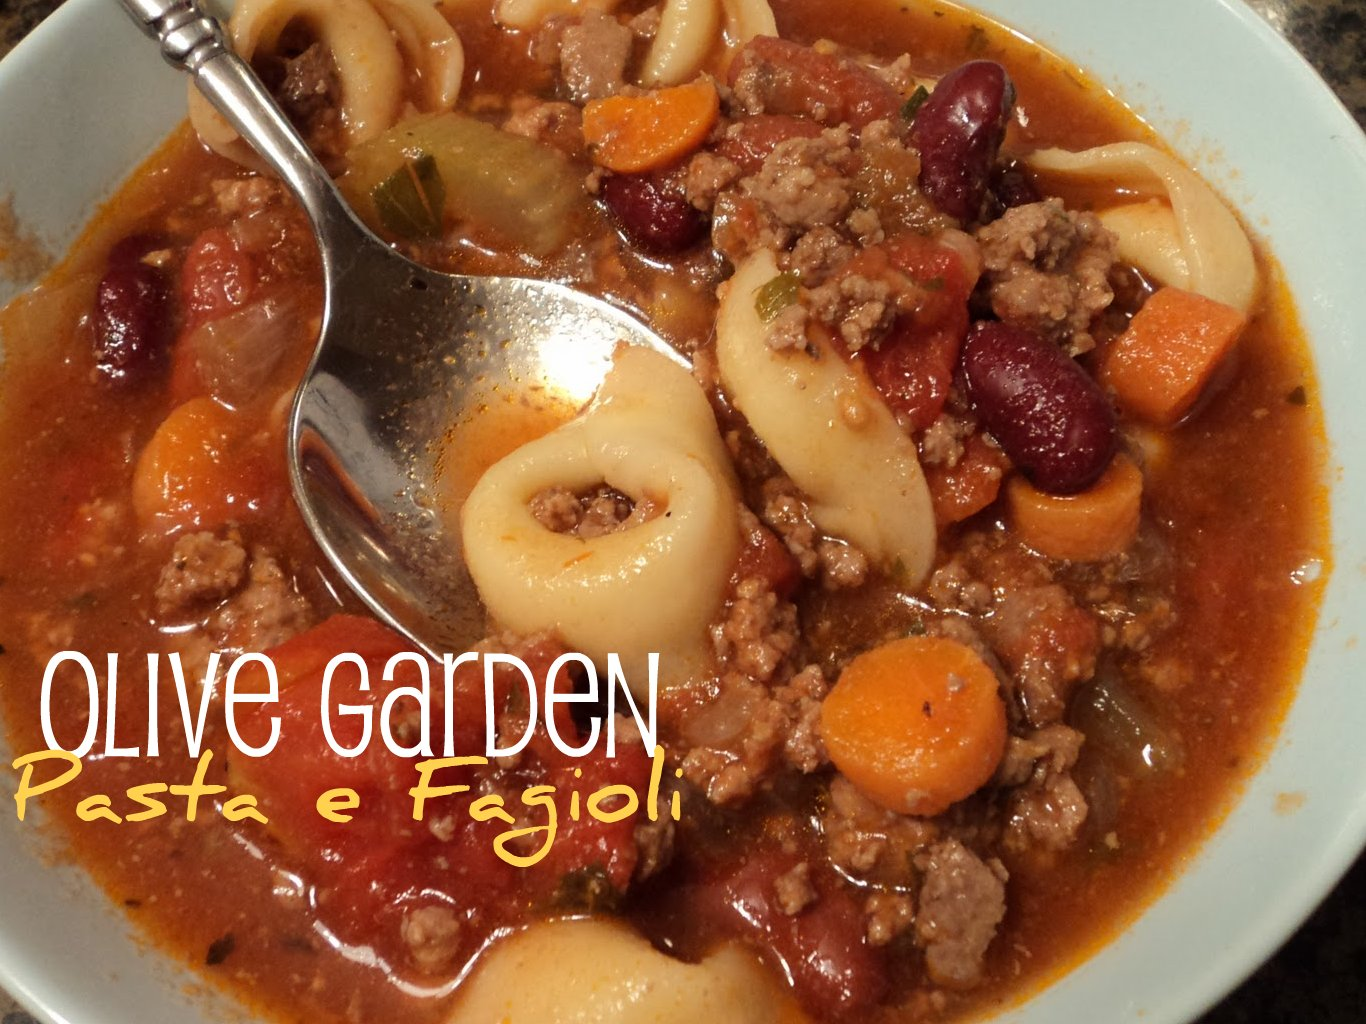 Recipe olive garden pasta e fagioli for the crock pot mommysavers